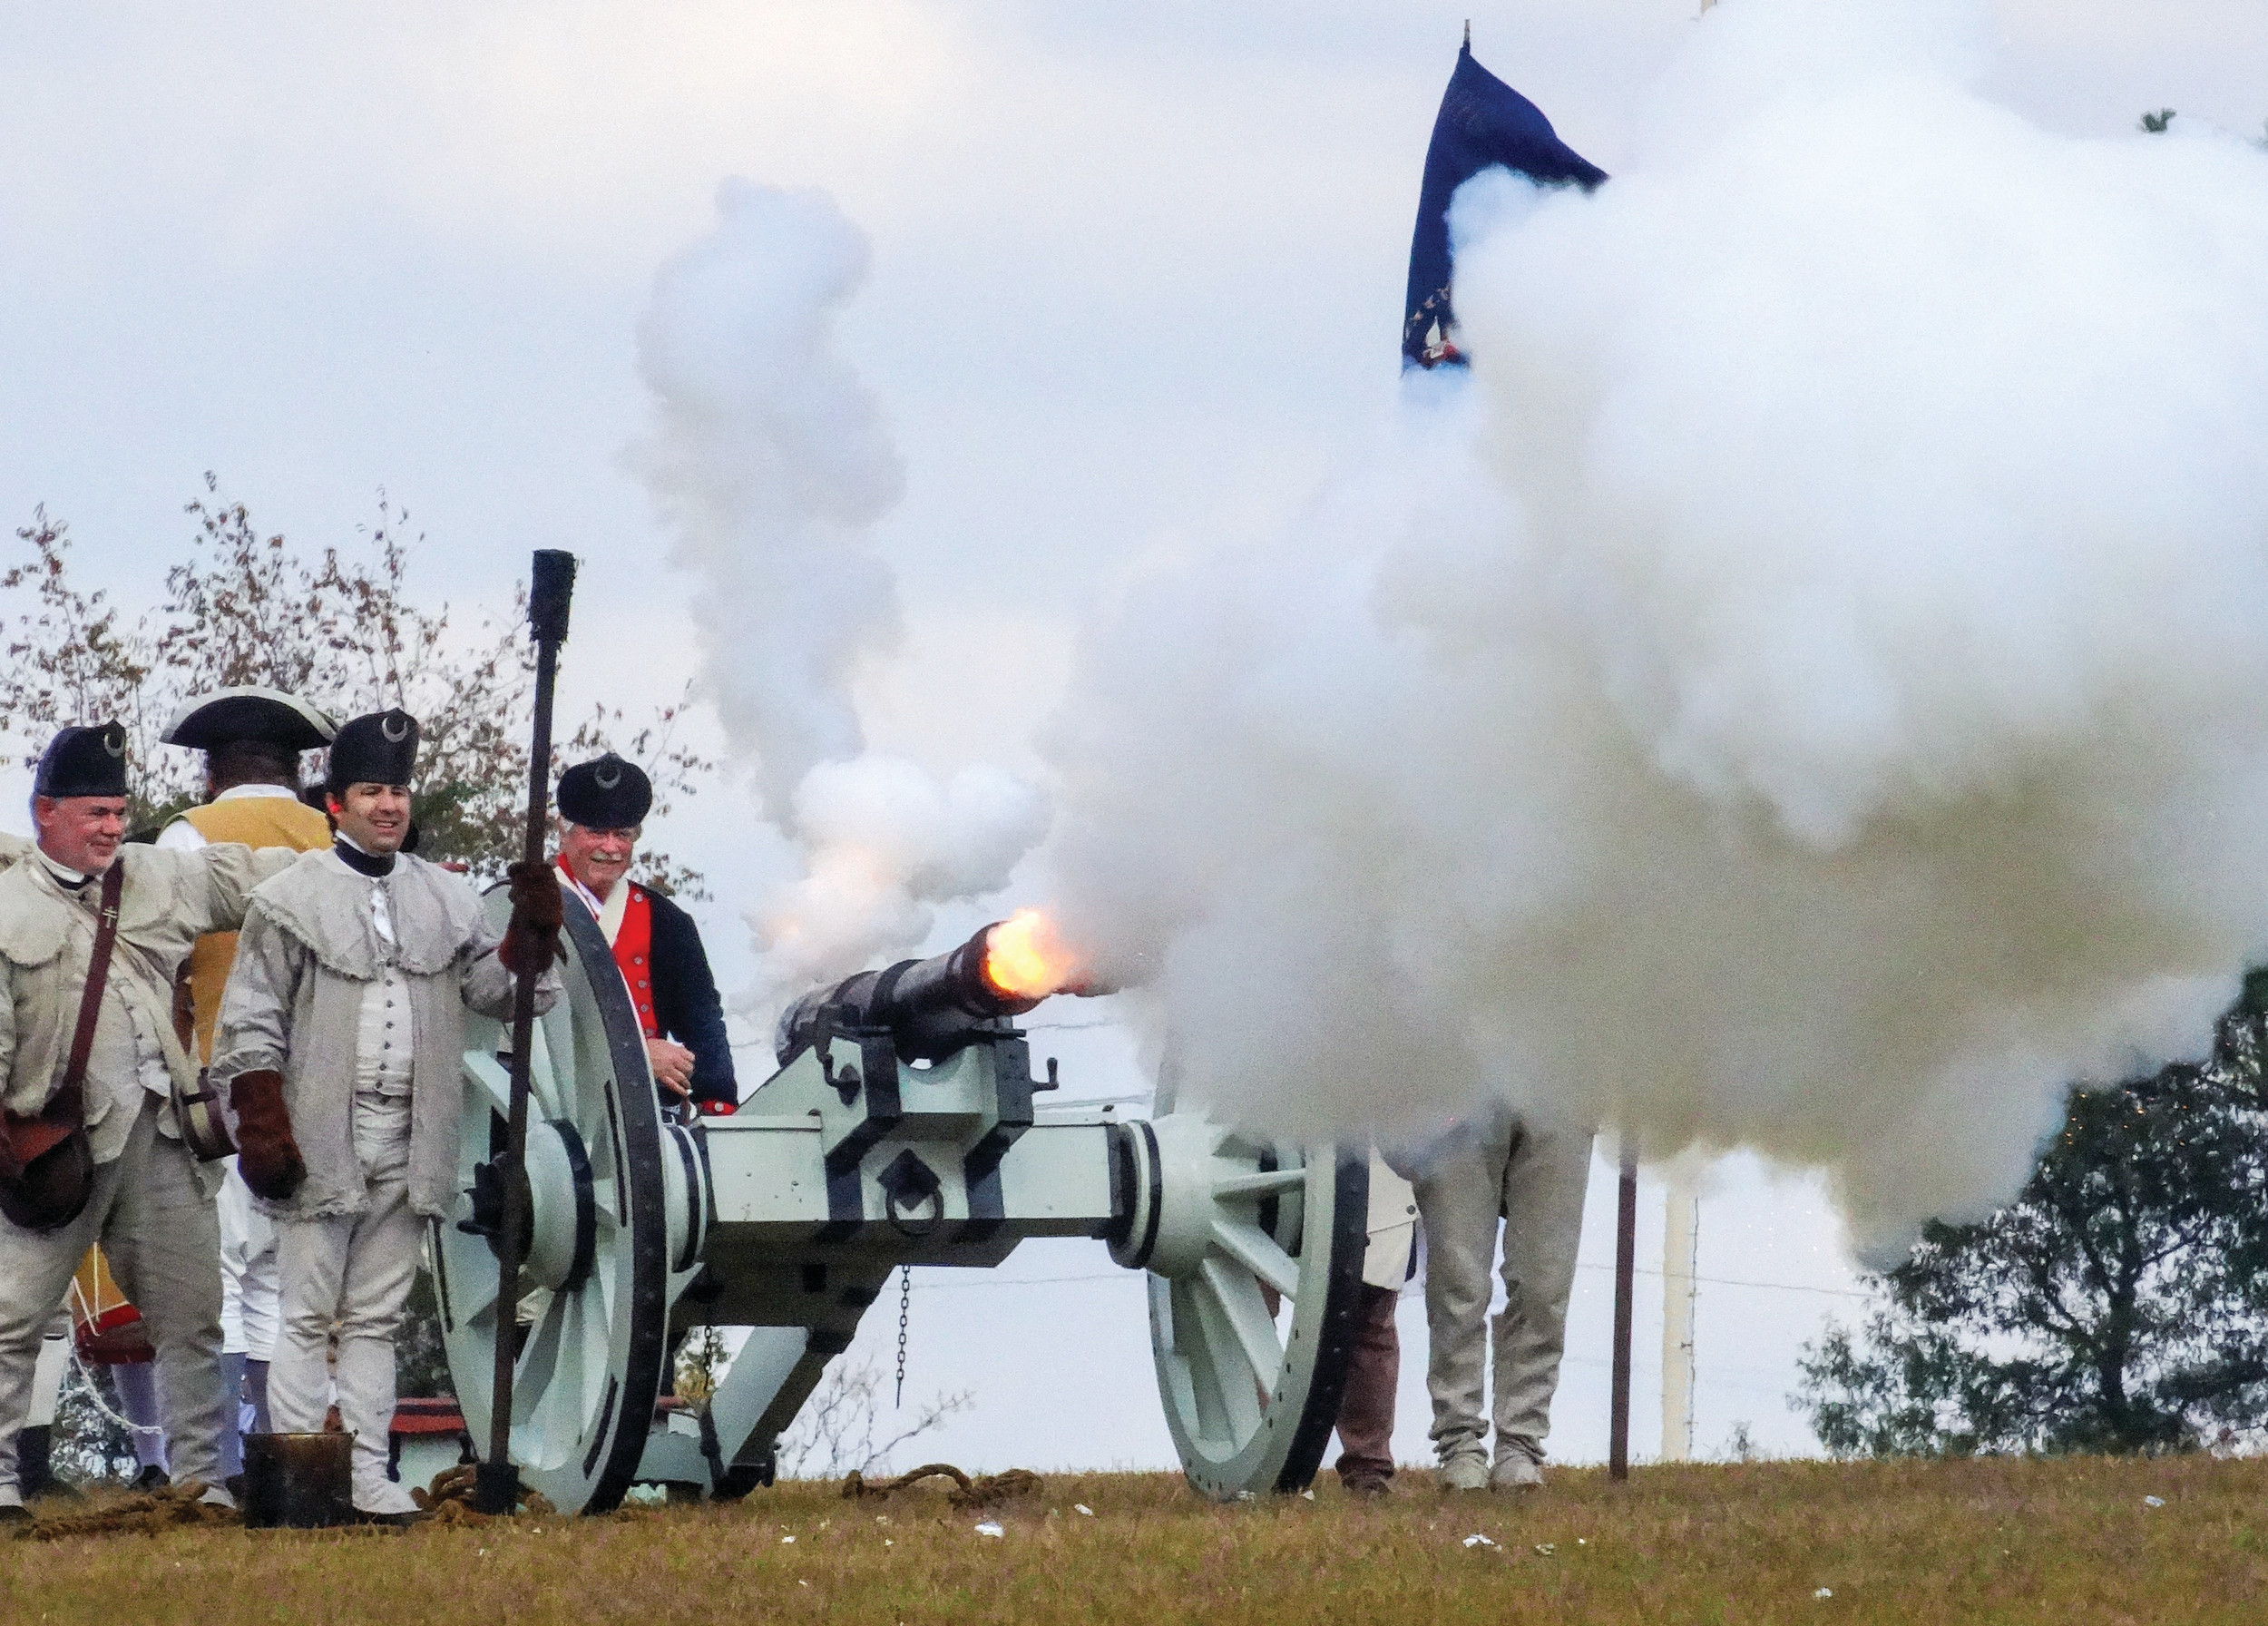 Reenactors fire a cannon at the 46th-annual Revolutionary War Field Days in Camden on Saturday afternoon. The event organized by Historic Camden included colonial games for children, demonstrations of traditional crafts, plenty of food to try and more.